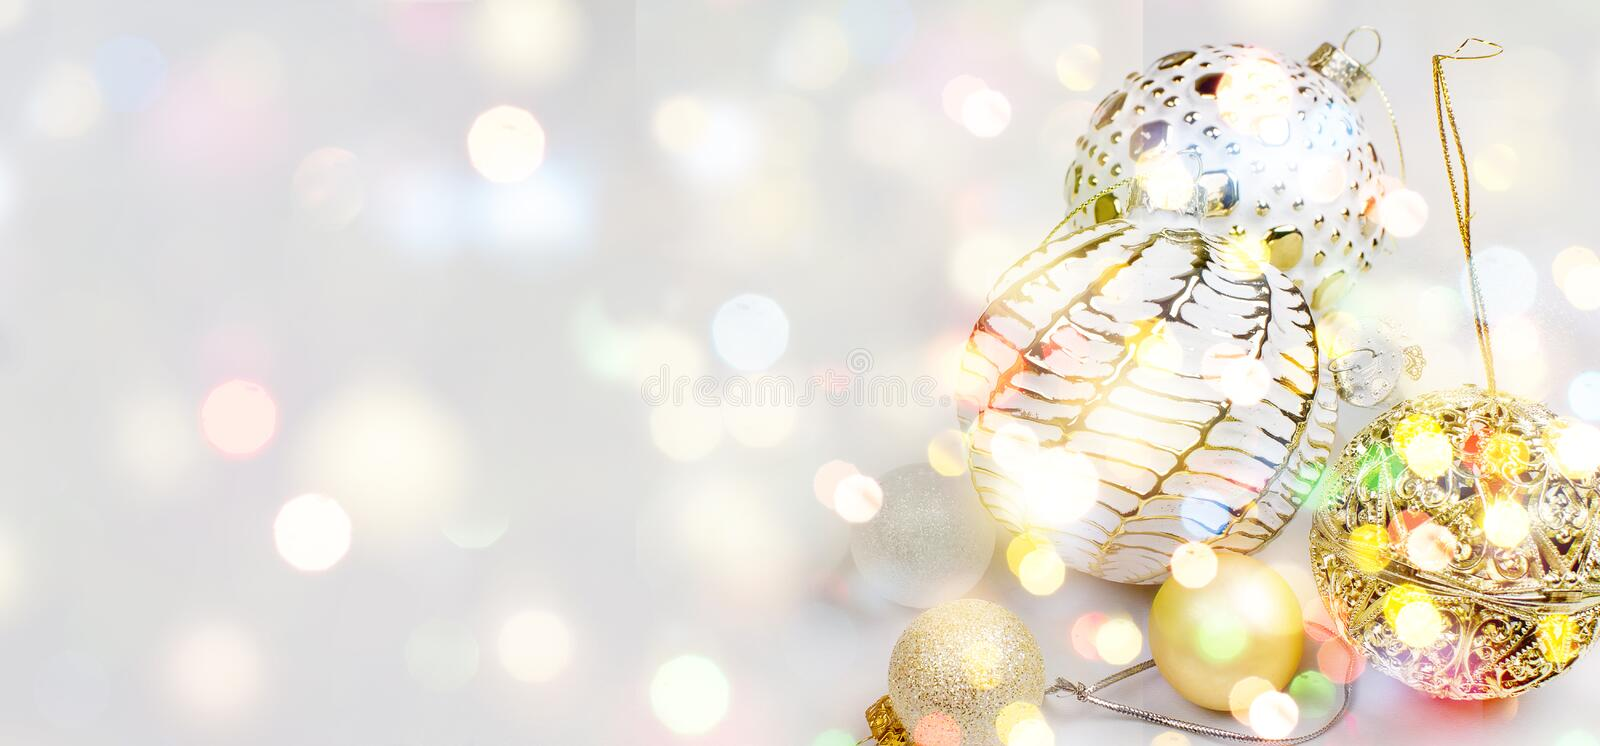 Elegant Christmas background with gold and white evening balls stock image